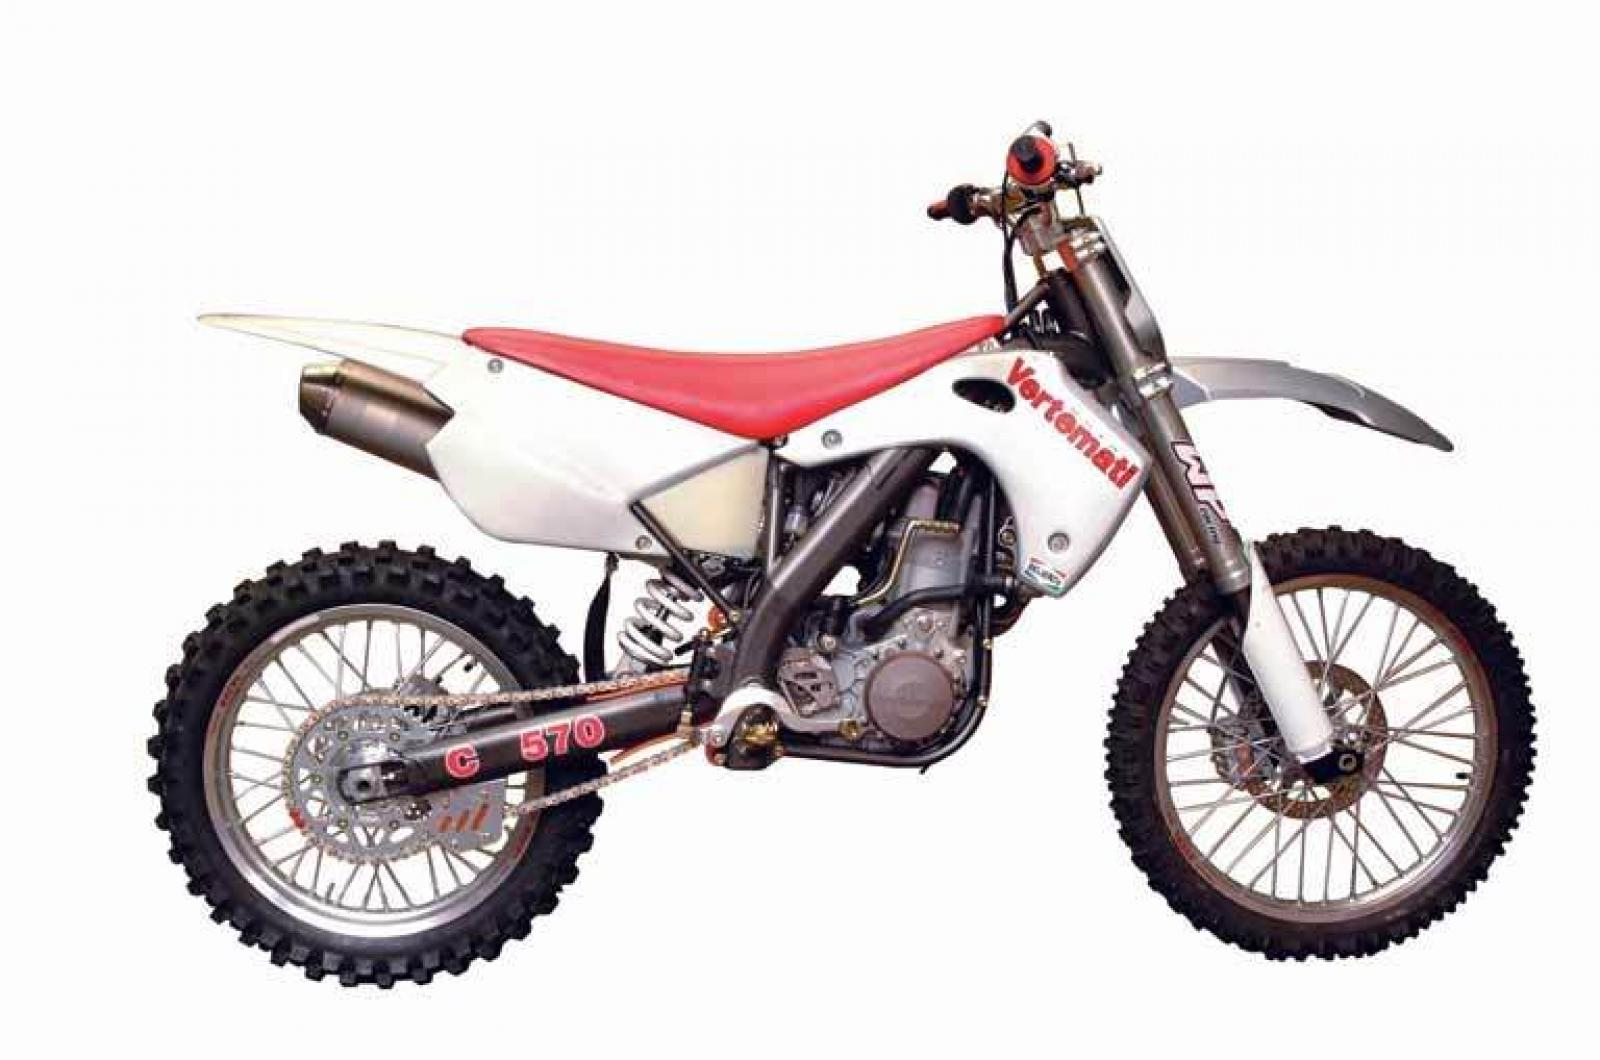 Vertemati E 501 Enduro wallpapers #132274